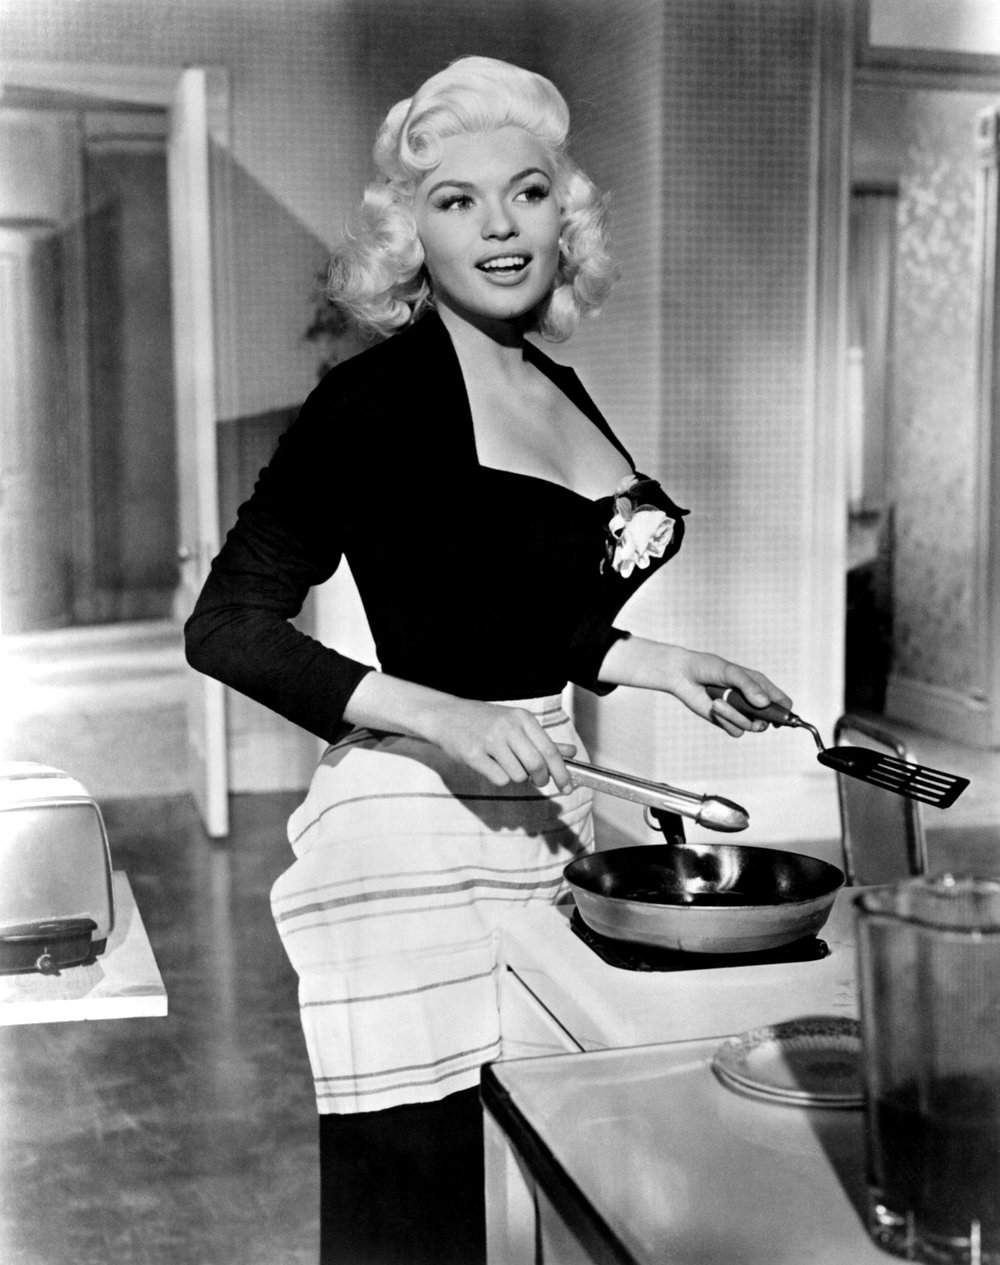 Jayne Mansfield in The Girl Can't Help It (1956)